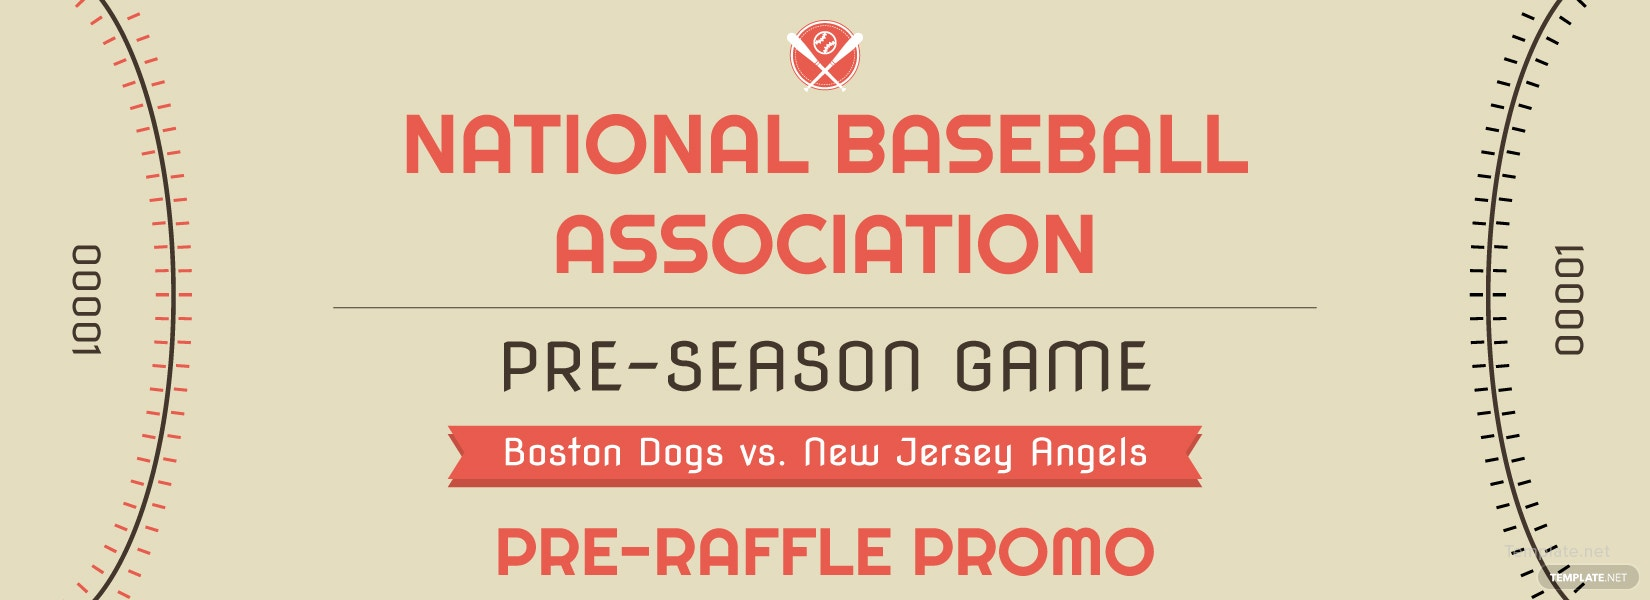 free baseball raffle ticket template in adobe photoshop